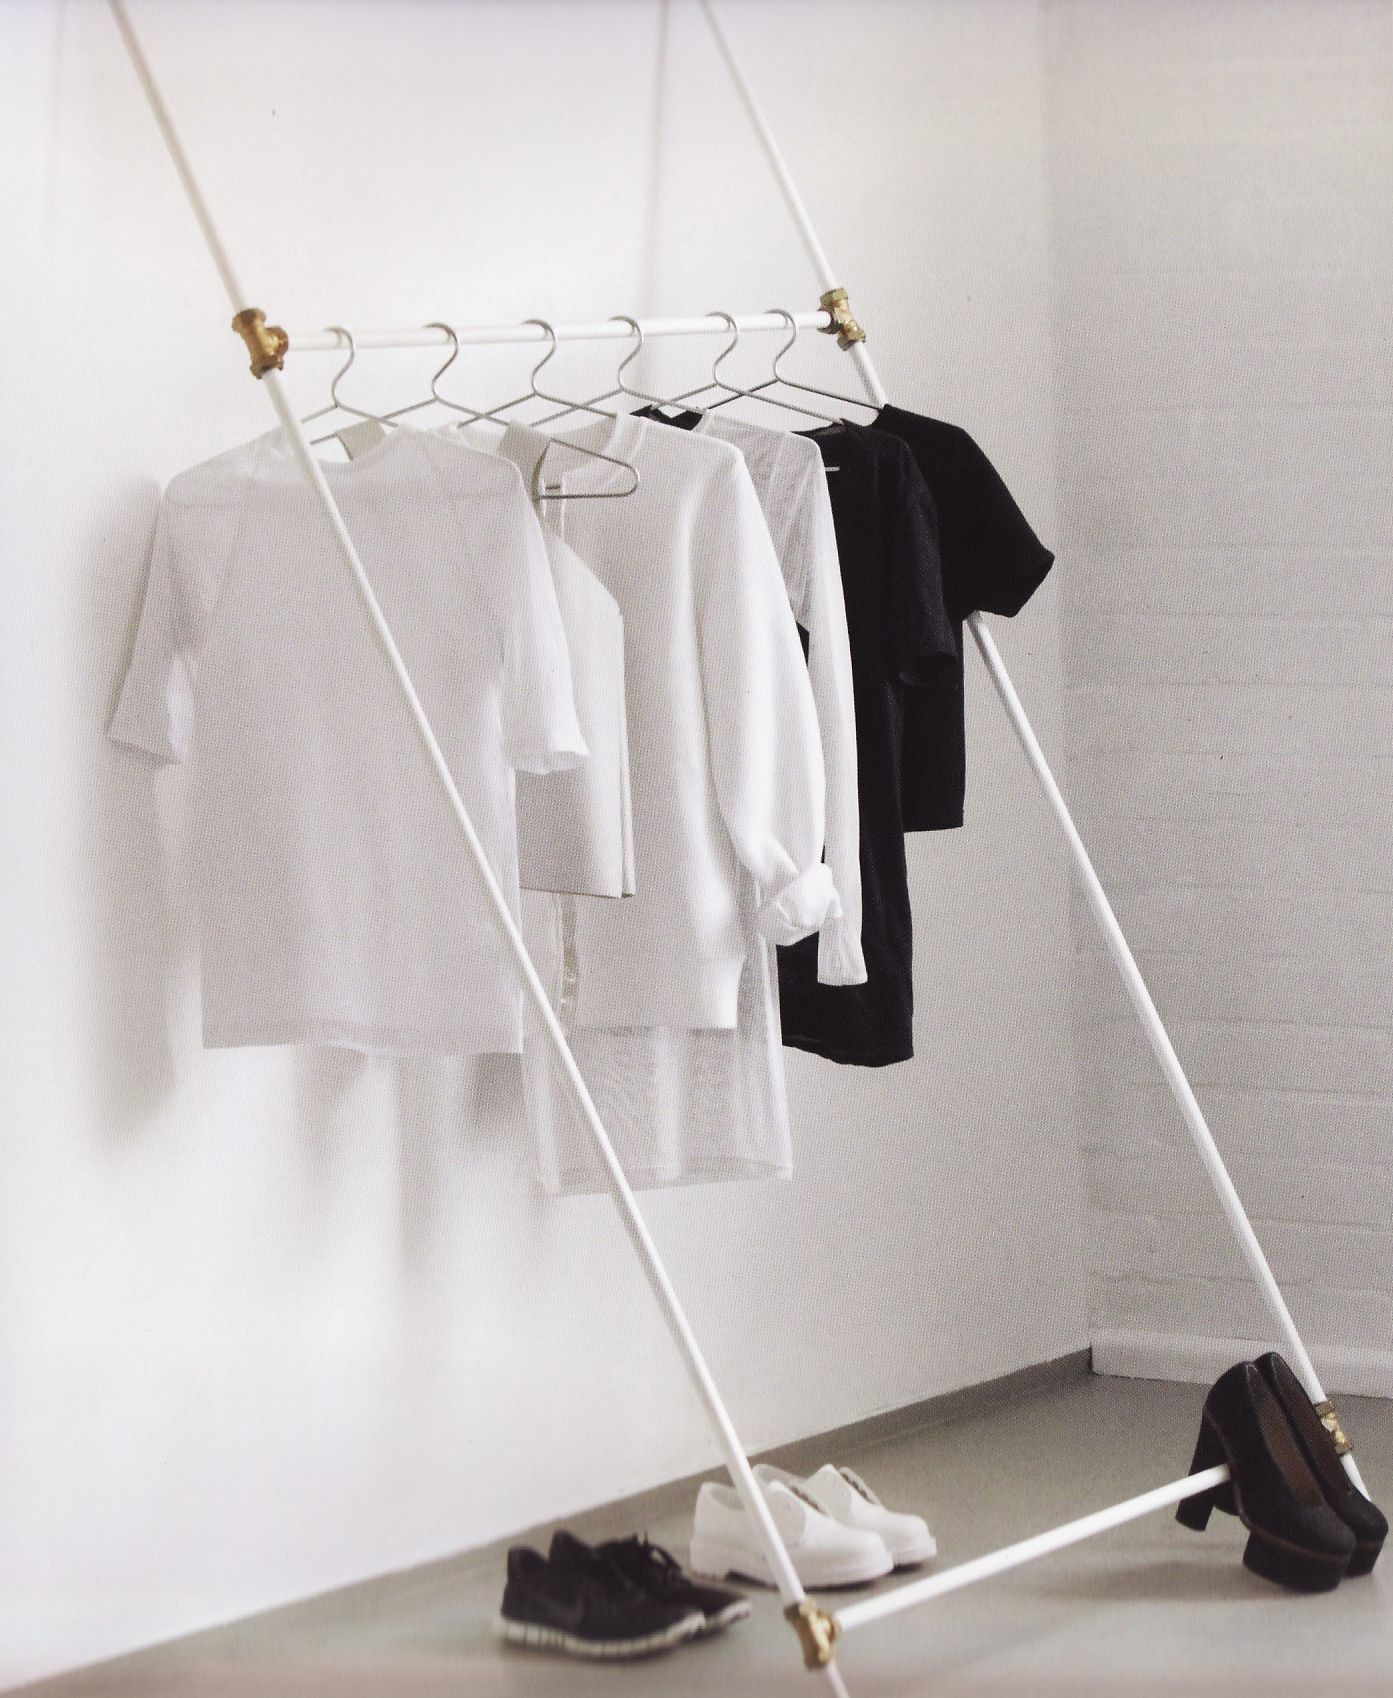 Diy Clothing Rack For A Bedroom Without A Closet